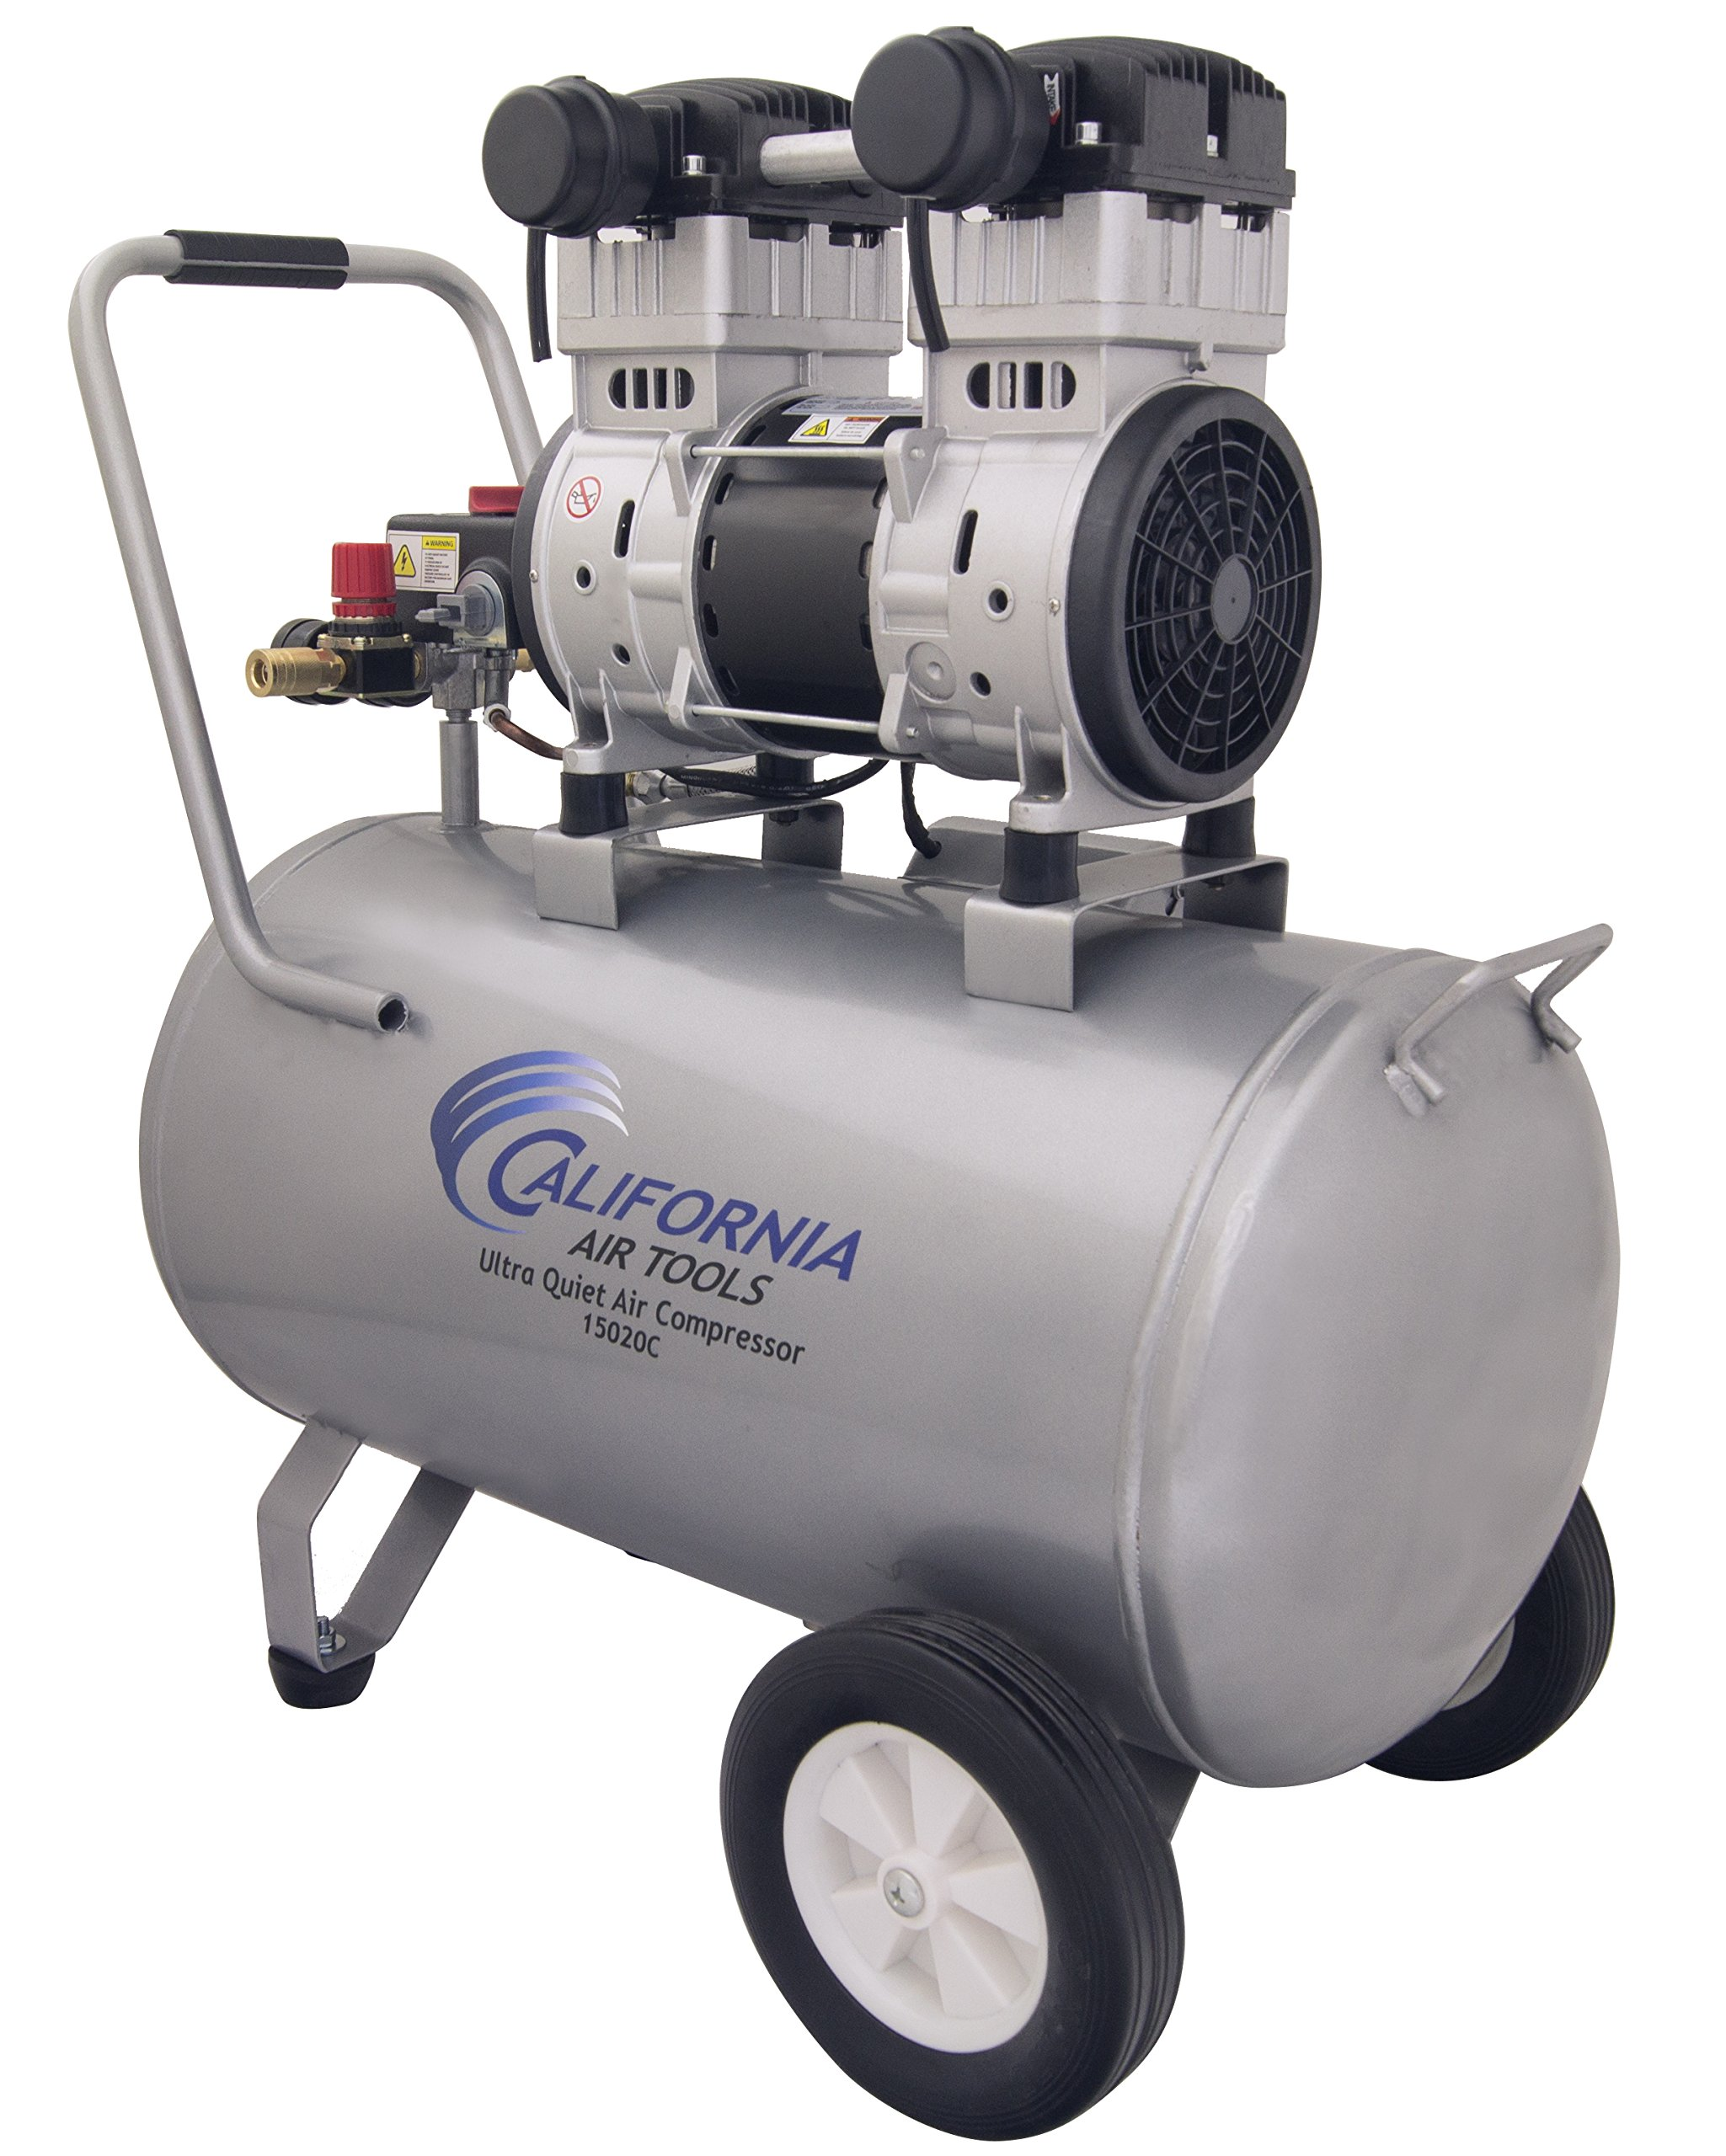 California Air Tools 15020C Ultra Quiet and Oil-Free 2.0 HP 15.0-Gallon Steel Tank Air Compressor by California Air Tools (Image #6)